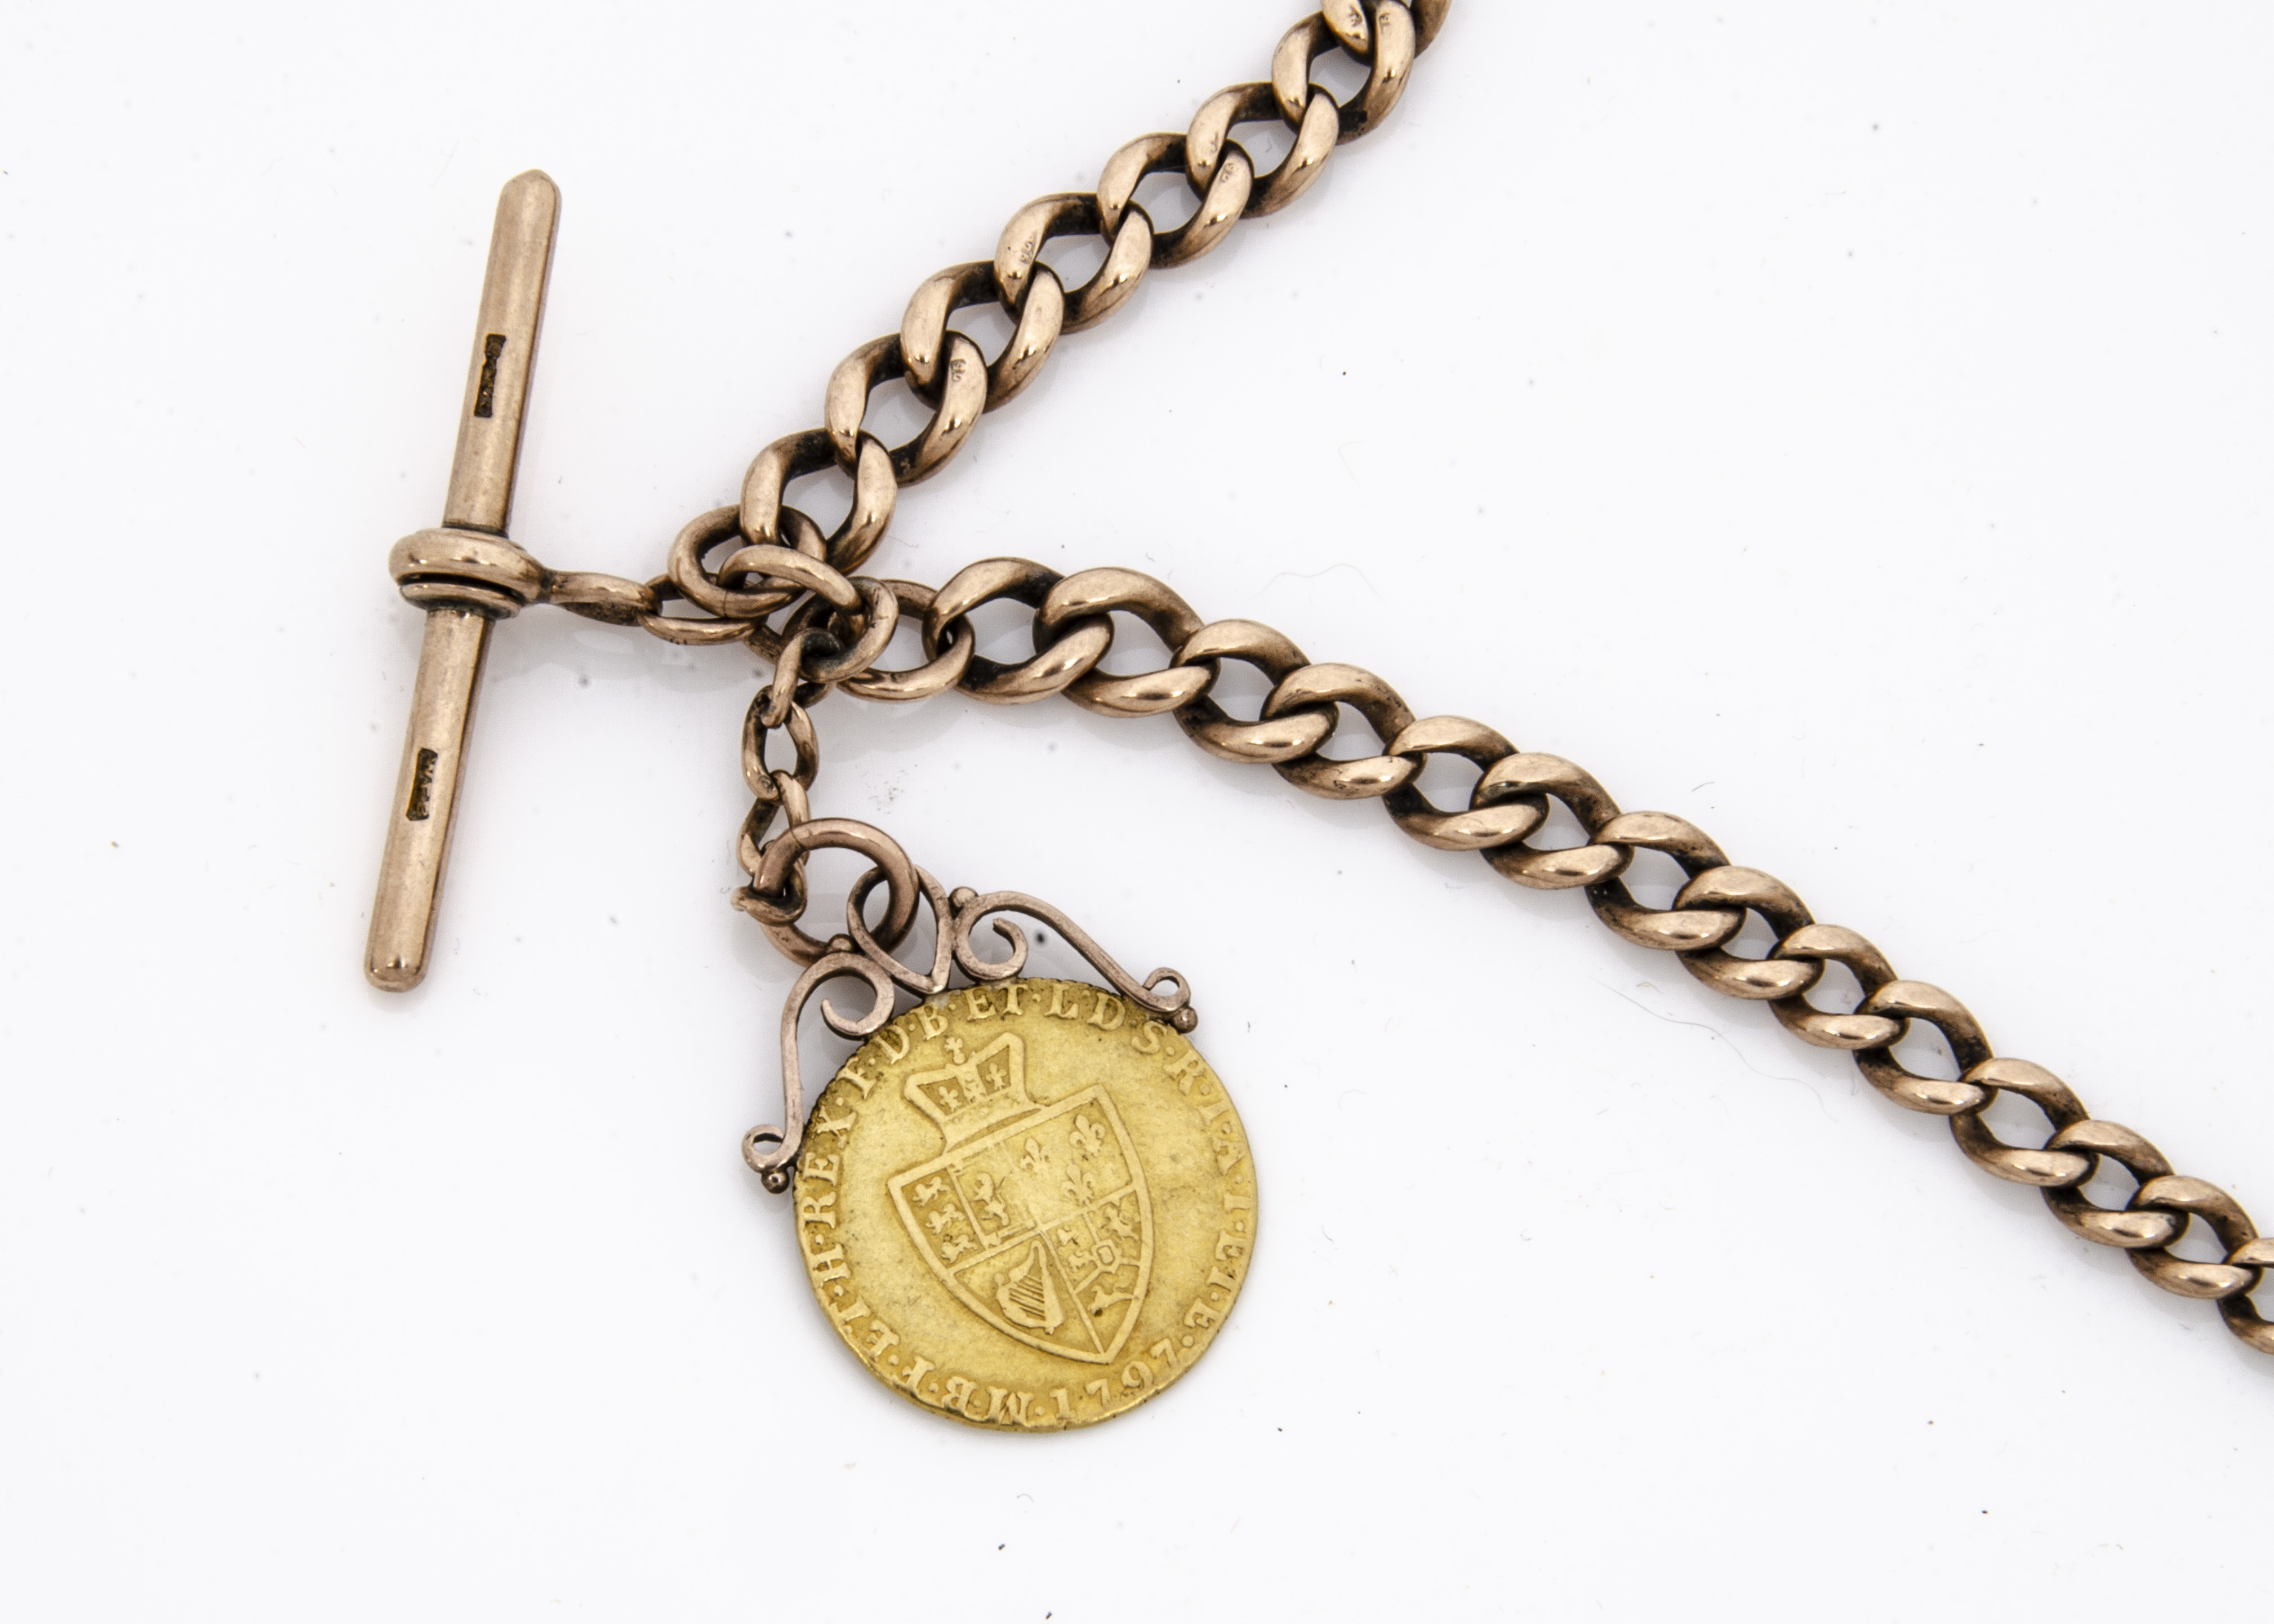 A late Victorian or Edwardian 9ct gold curb link double Albert pocket watch chain, hallmarked, and - Image 2 of 2